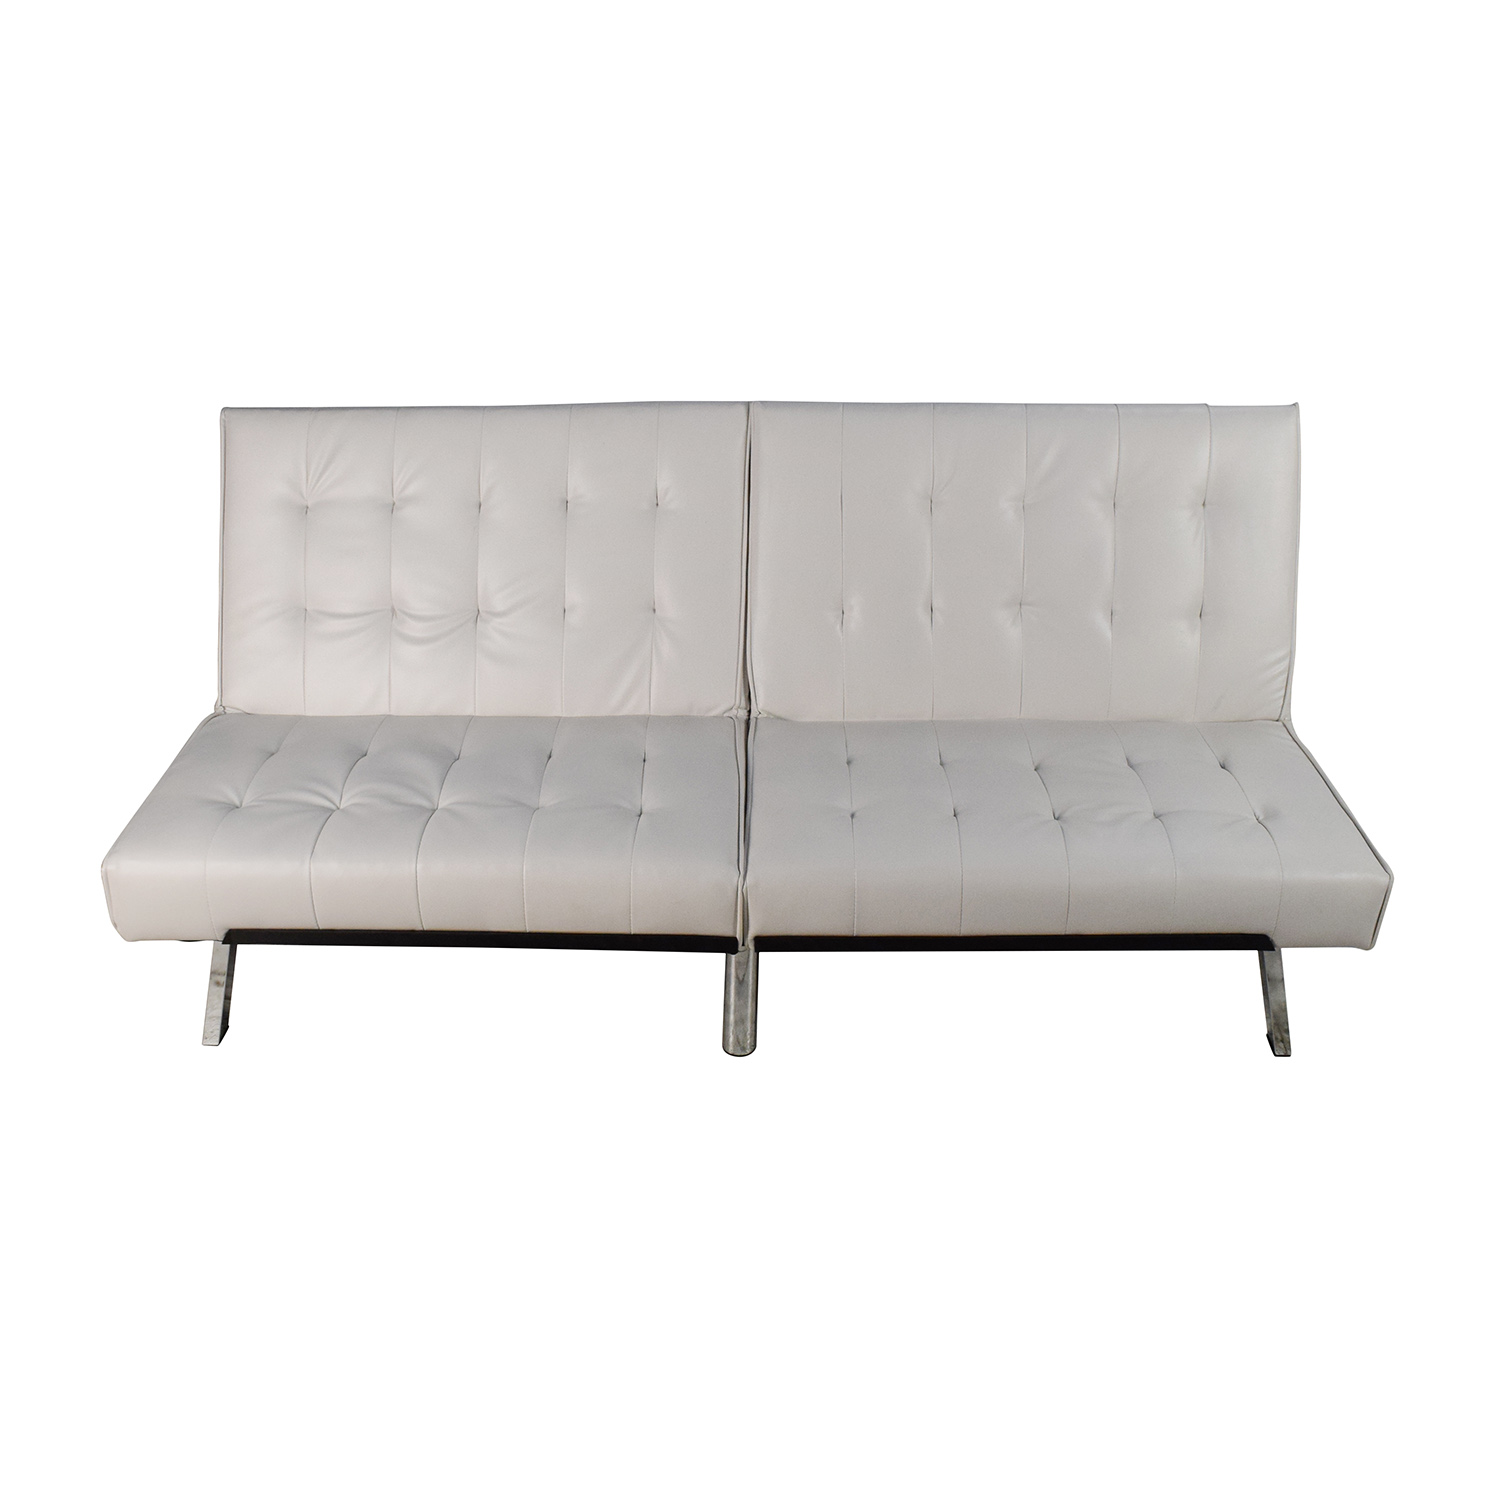 DHP DHP Emily Convertible Faux Leather Futon used